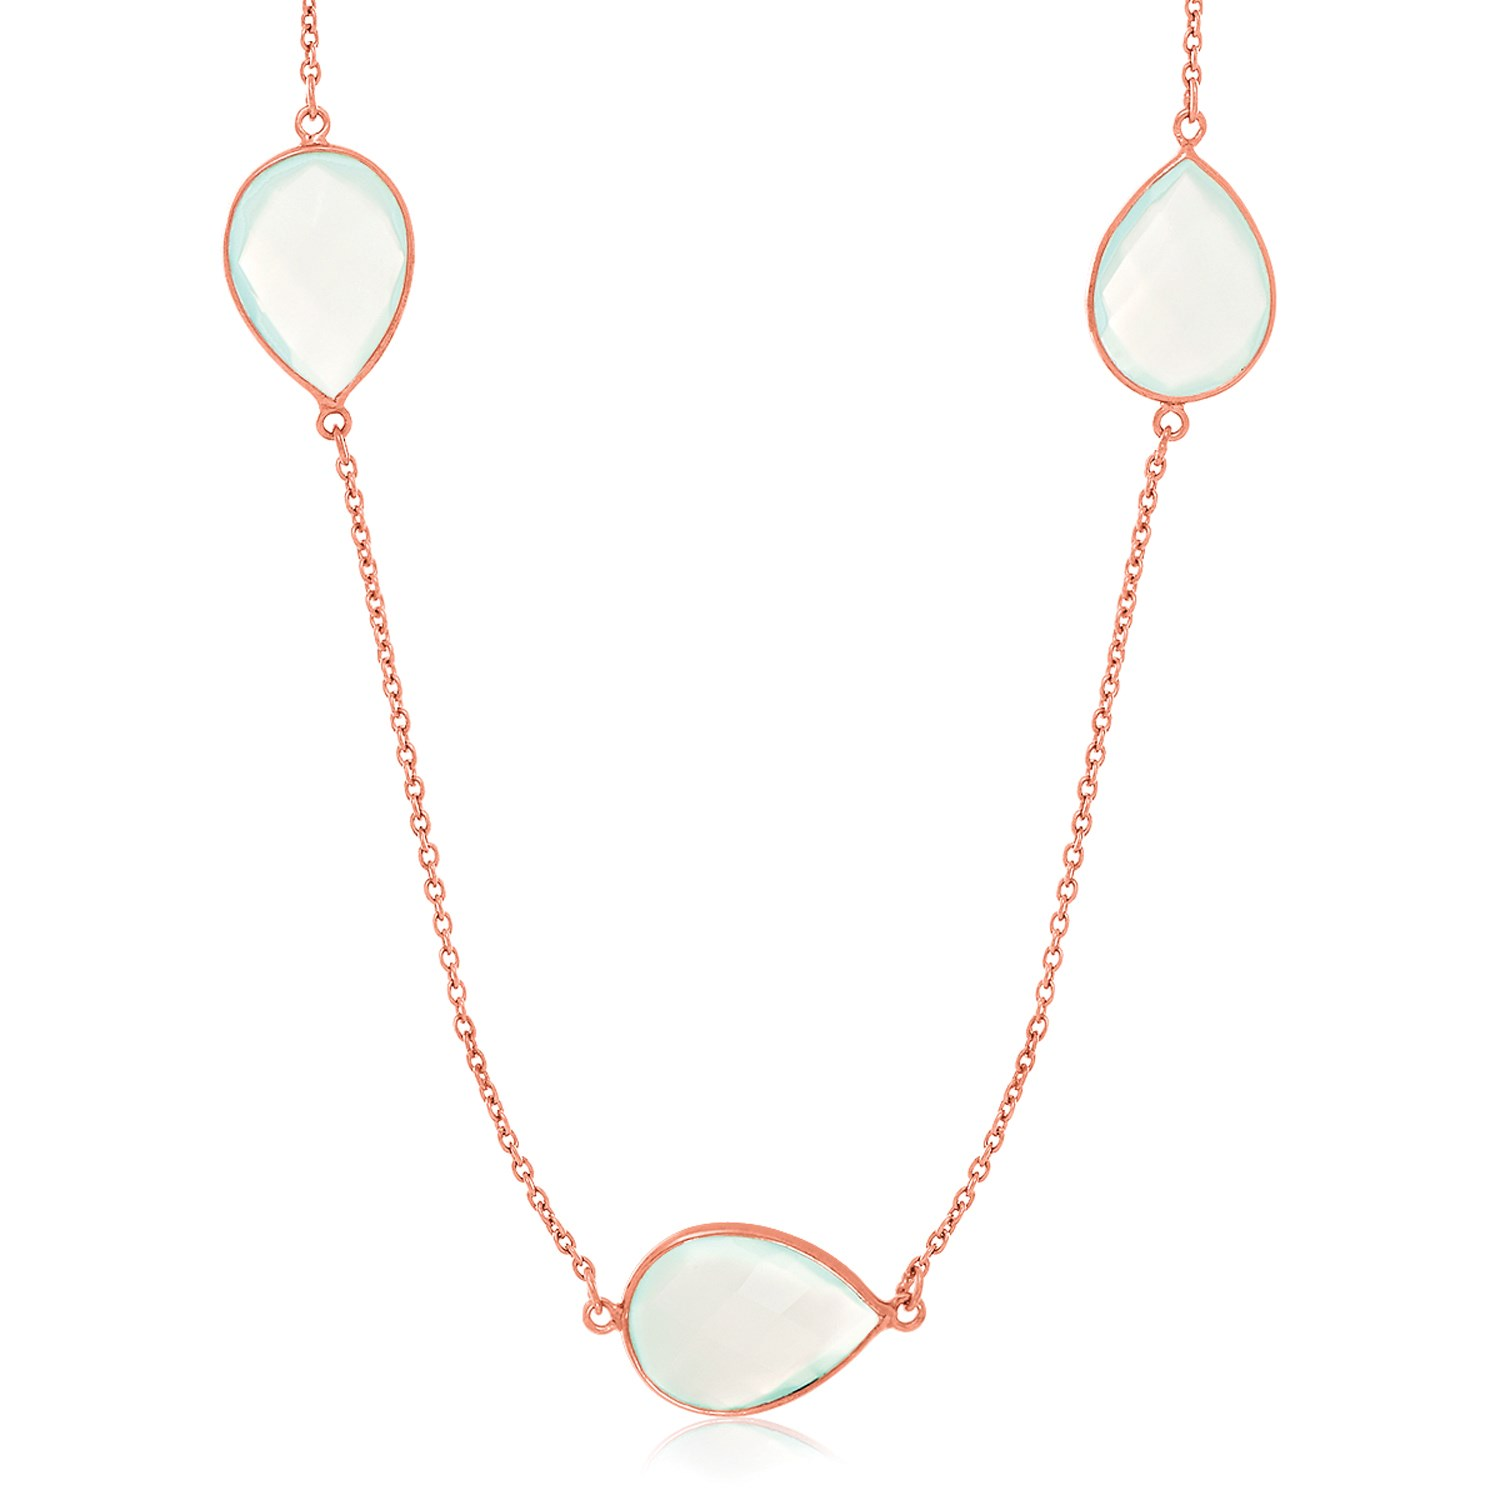 "Sterling Silver Rose Gold Plated Teardrop Station Long Necklace with Aqua Chalcedony 38"" by Mia Diamonds"